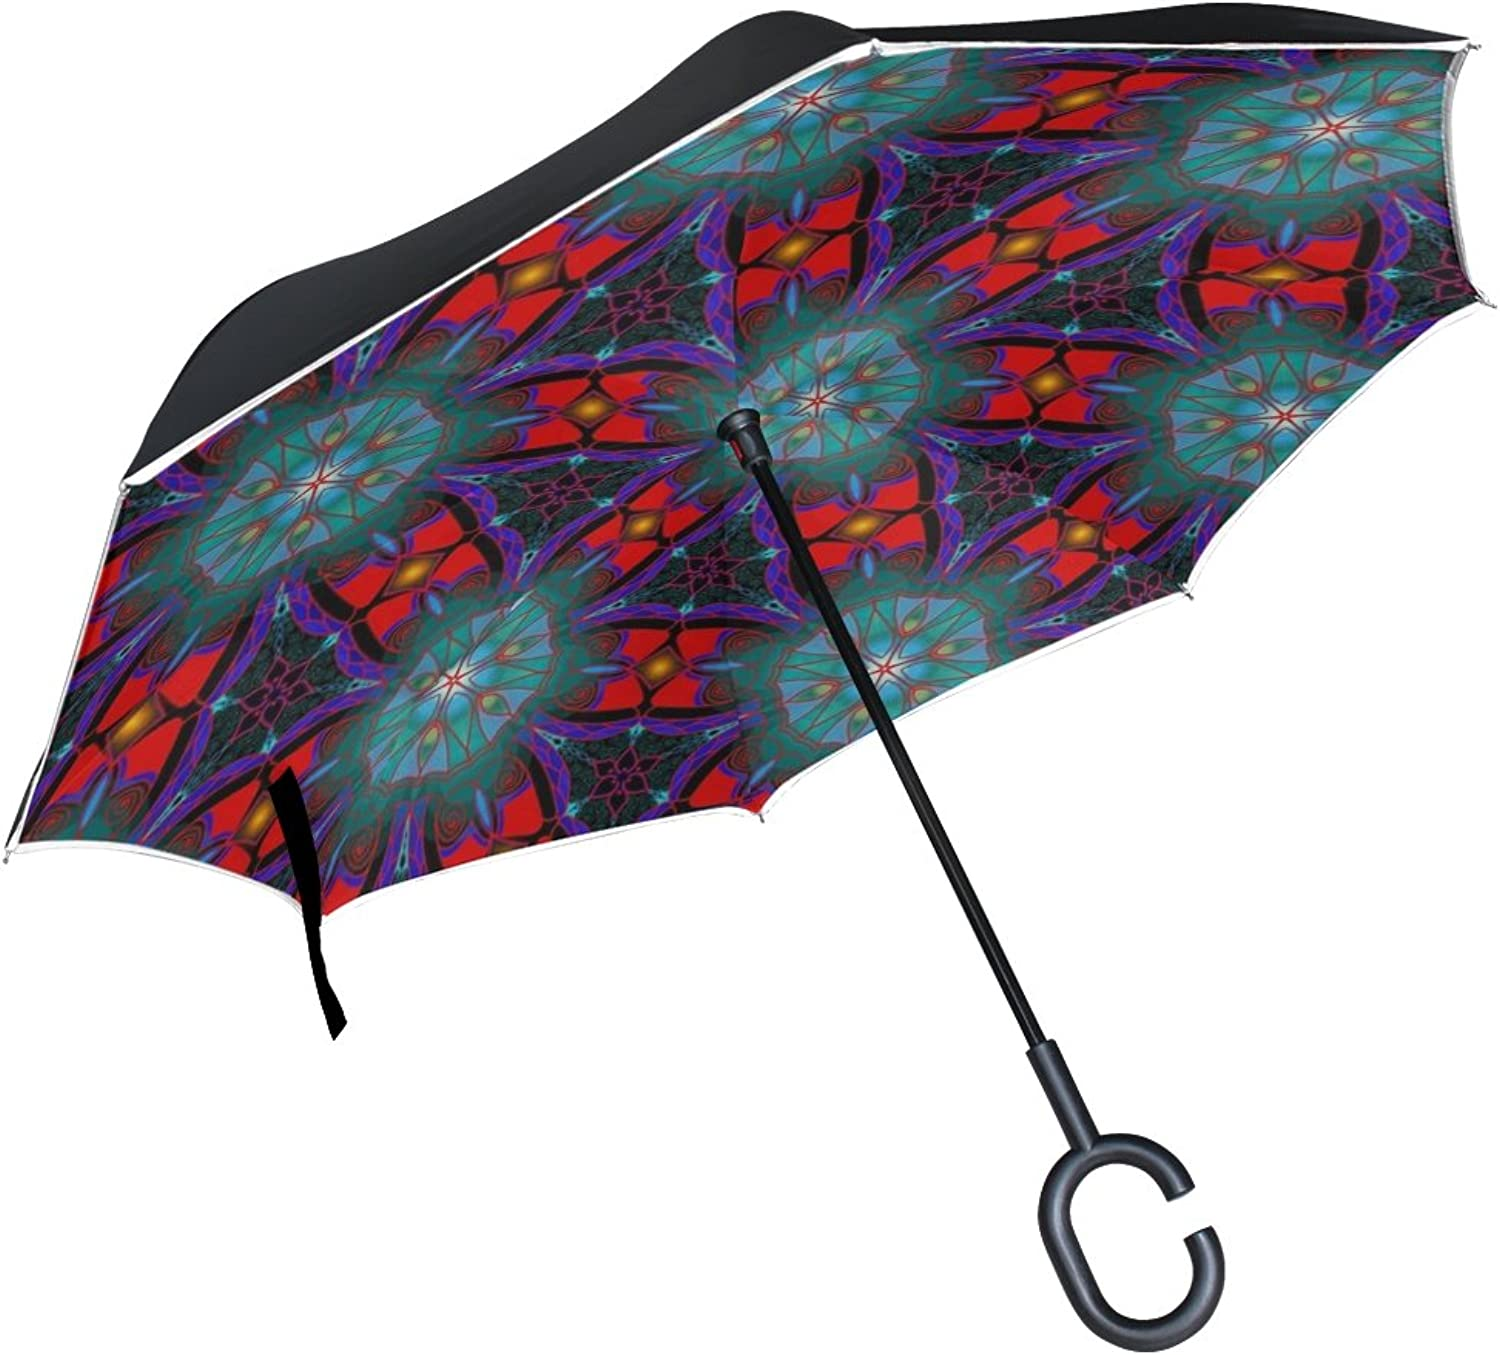 Double Layer Ingreened Ornament colorful color Design Umbrellas Reverse Folding Umbrella Windproof Uv Predection Big Straight Umbrella for Car Rain Outdoor with CShaped Handle